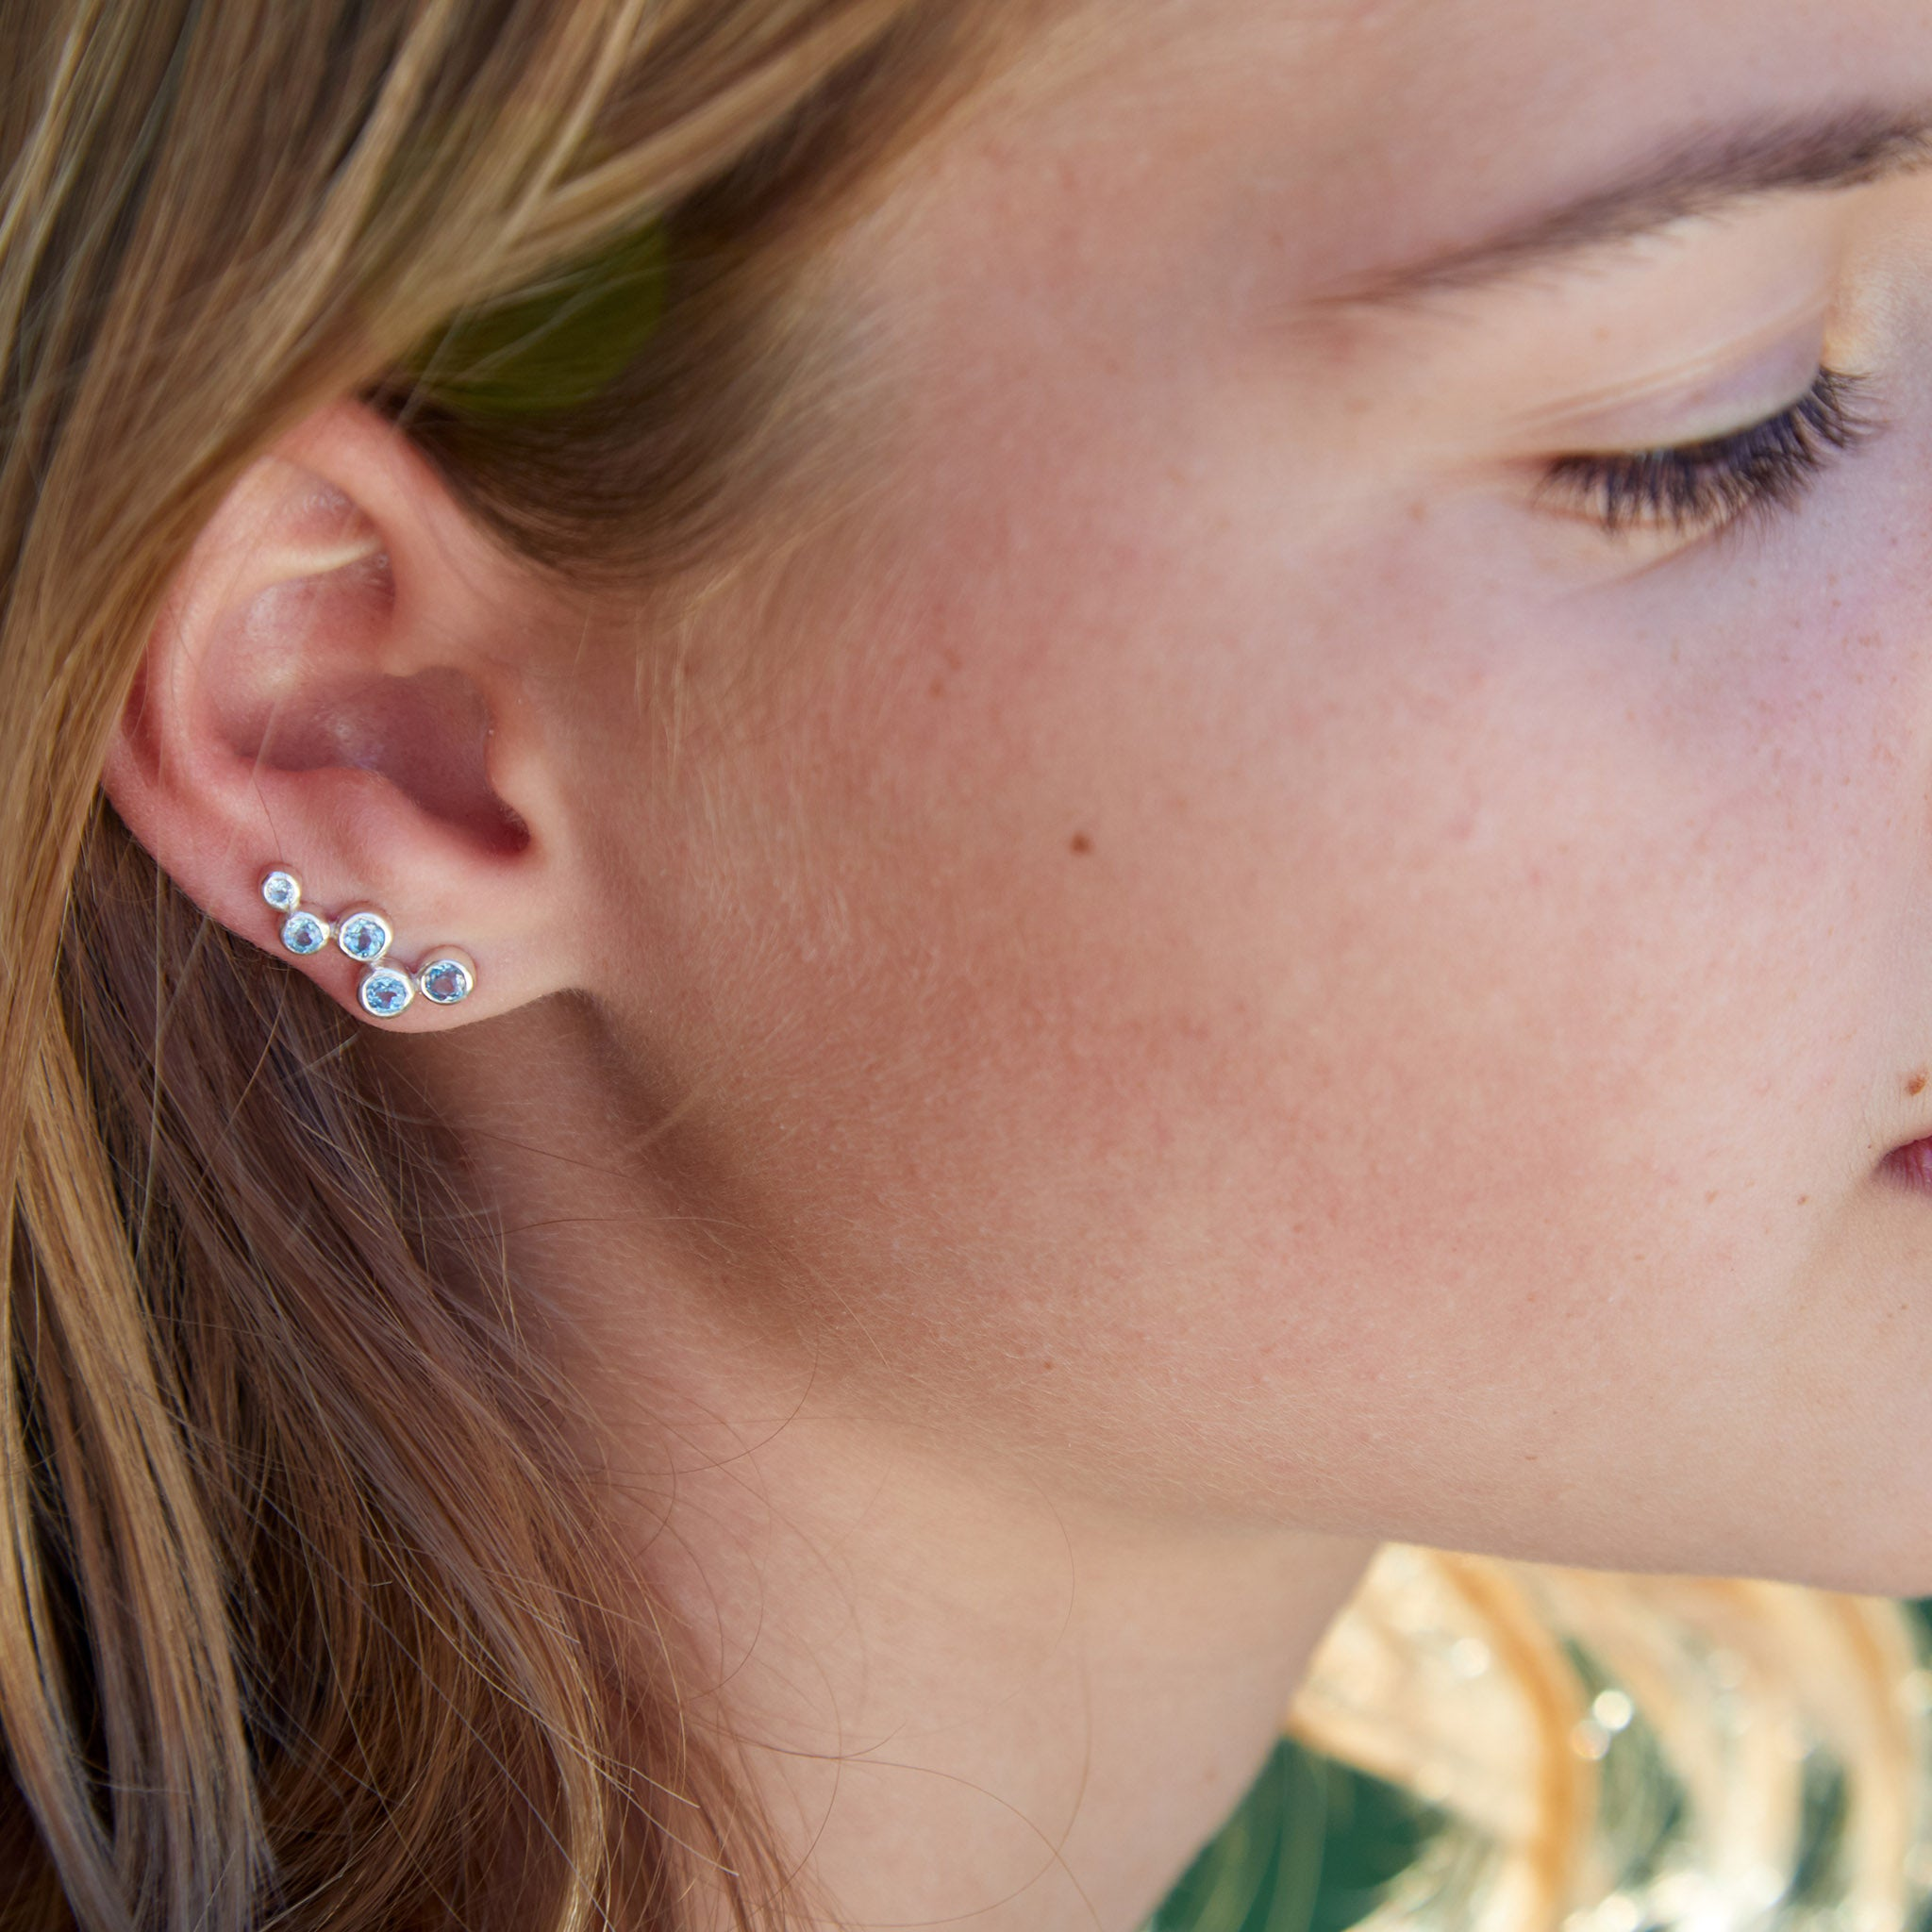 Aquila Studded Ear Jewel in Silver with Topaz